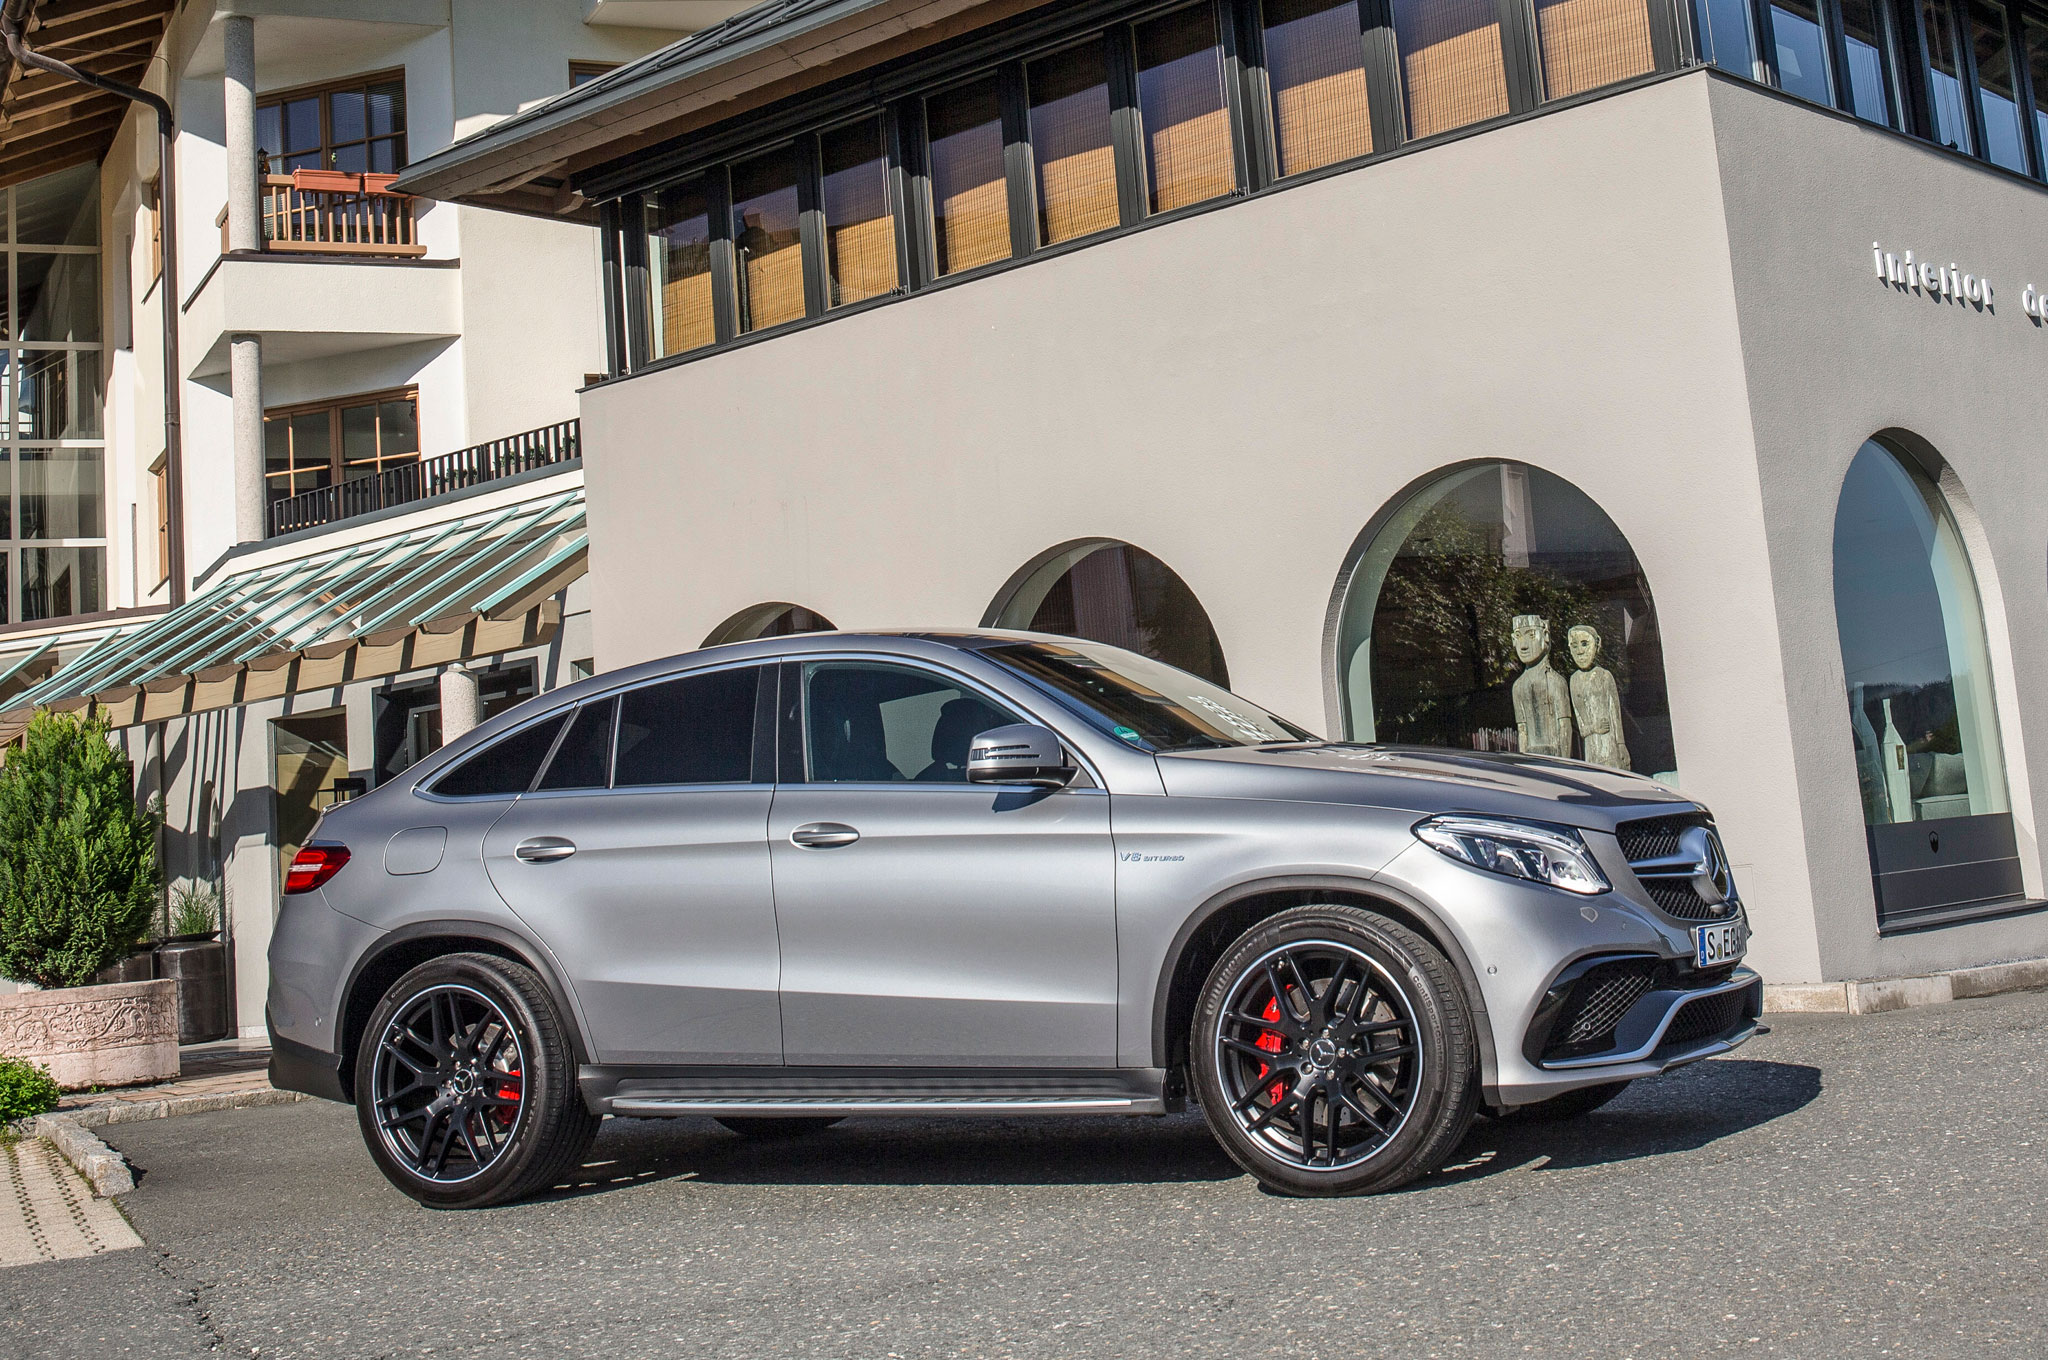 http://st.automobilemag.com/uploads/sites/11/2015/06/2016-Mercedes-AMG-GLE63-S-4Matic-Coupe-front-three-quarter-in-motion-06.jpg